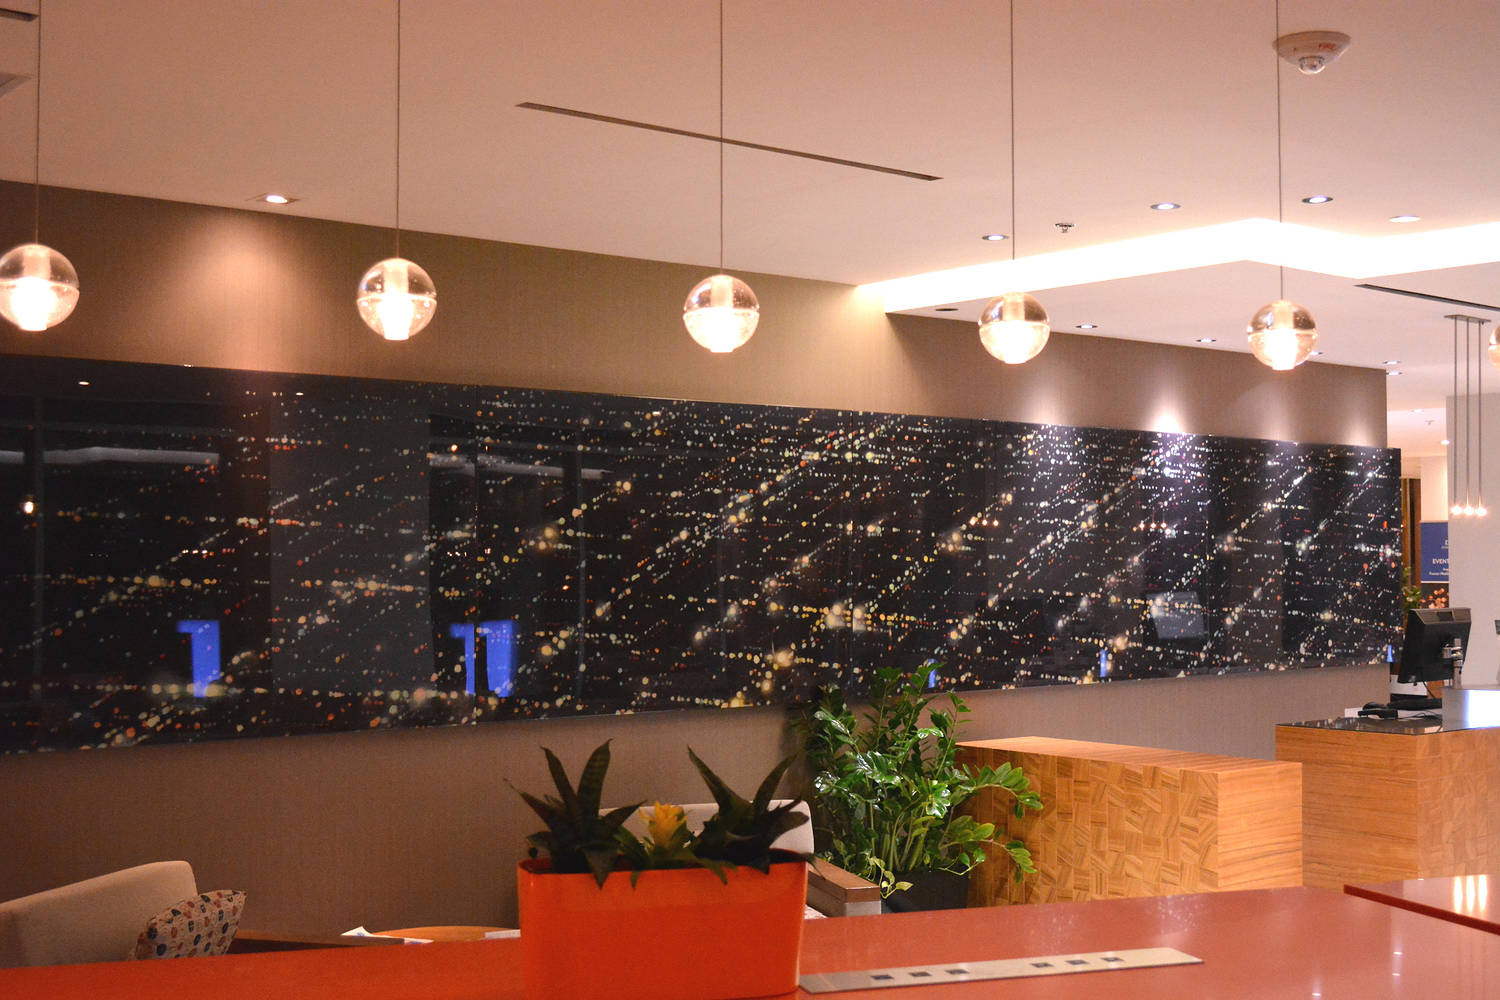 Lobby of Downtown Ottawa Delta Hotel, installation of print of painting - 4 ' x 36 ', 2012 by Dennis Ekstedt